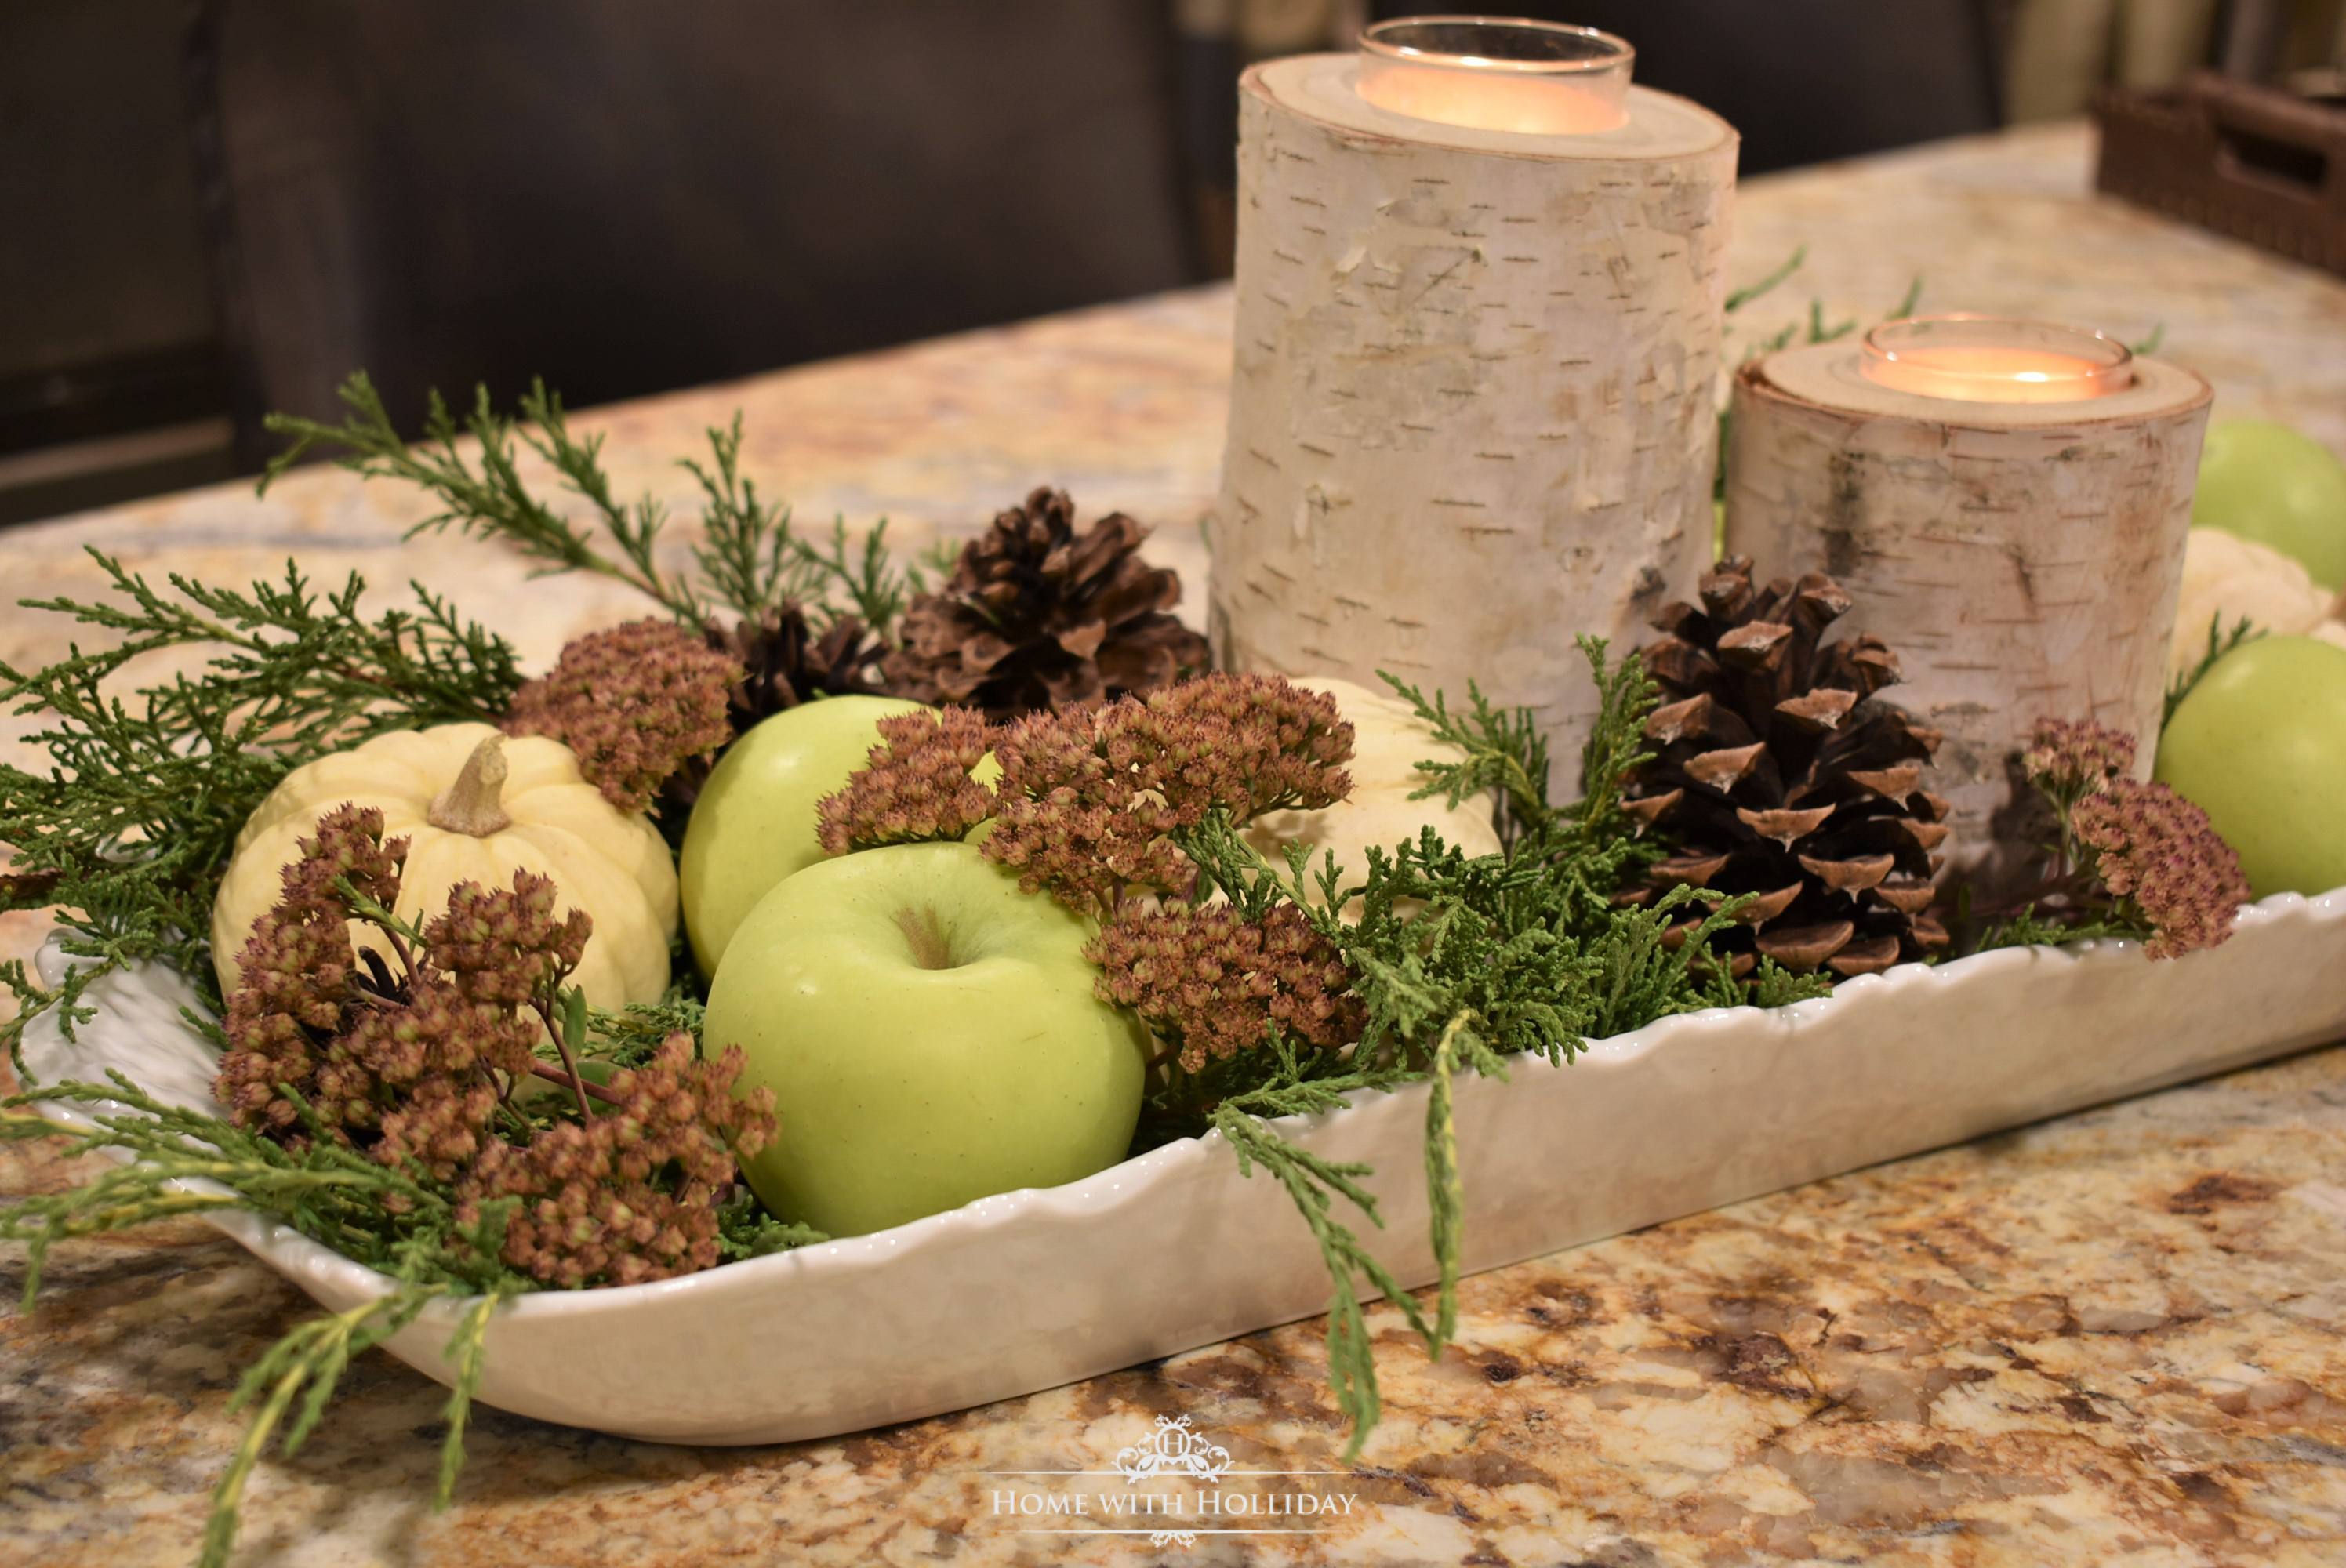 Fall Centerpiece with Green Apples - Home with Holliday